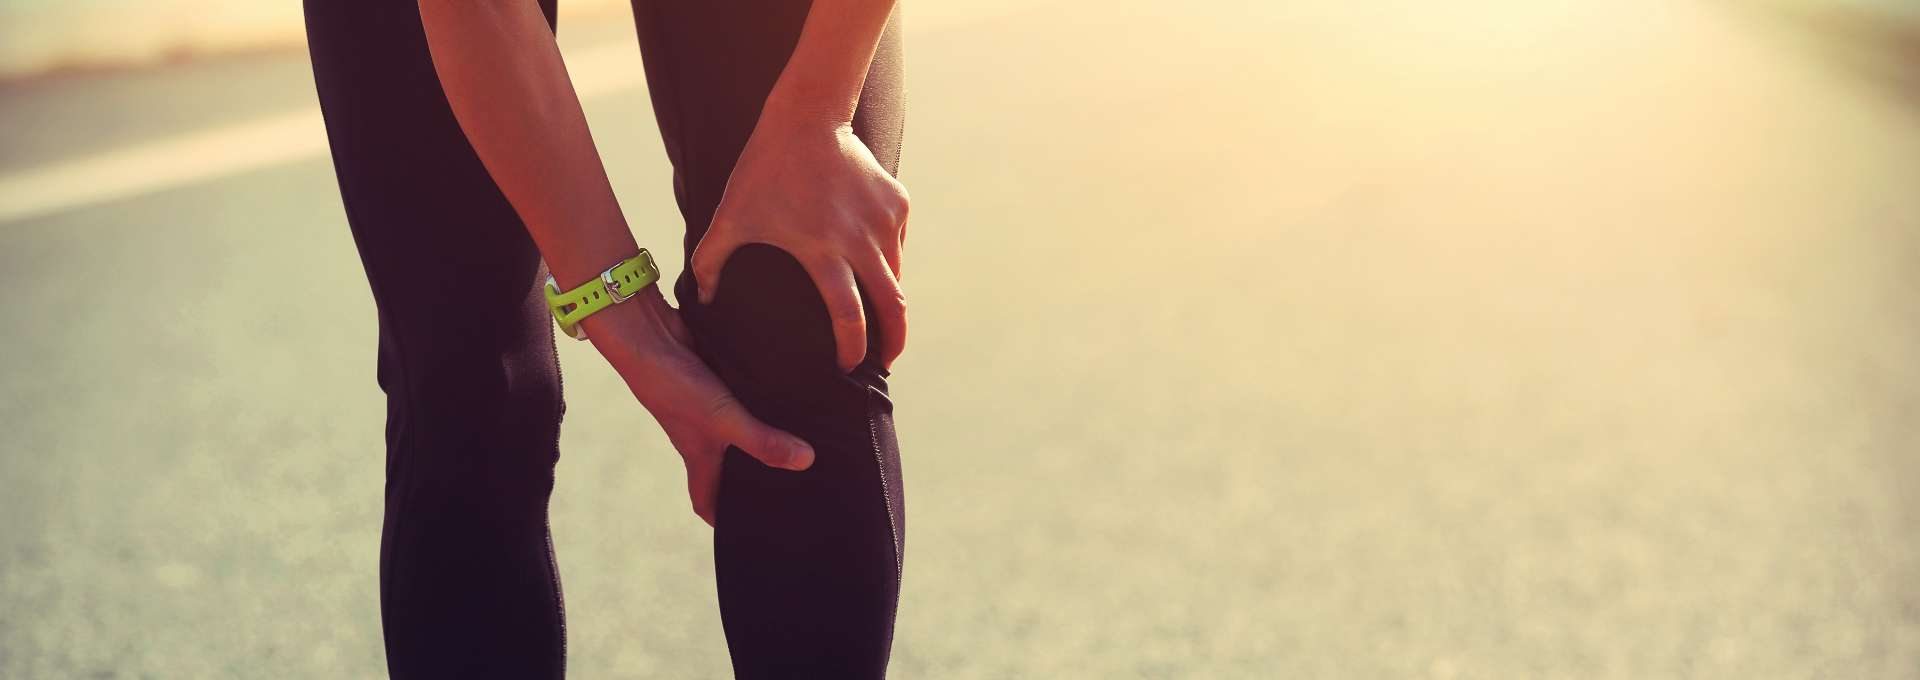 7 injury prevention tips you'll want to know